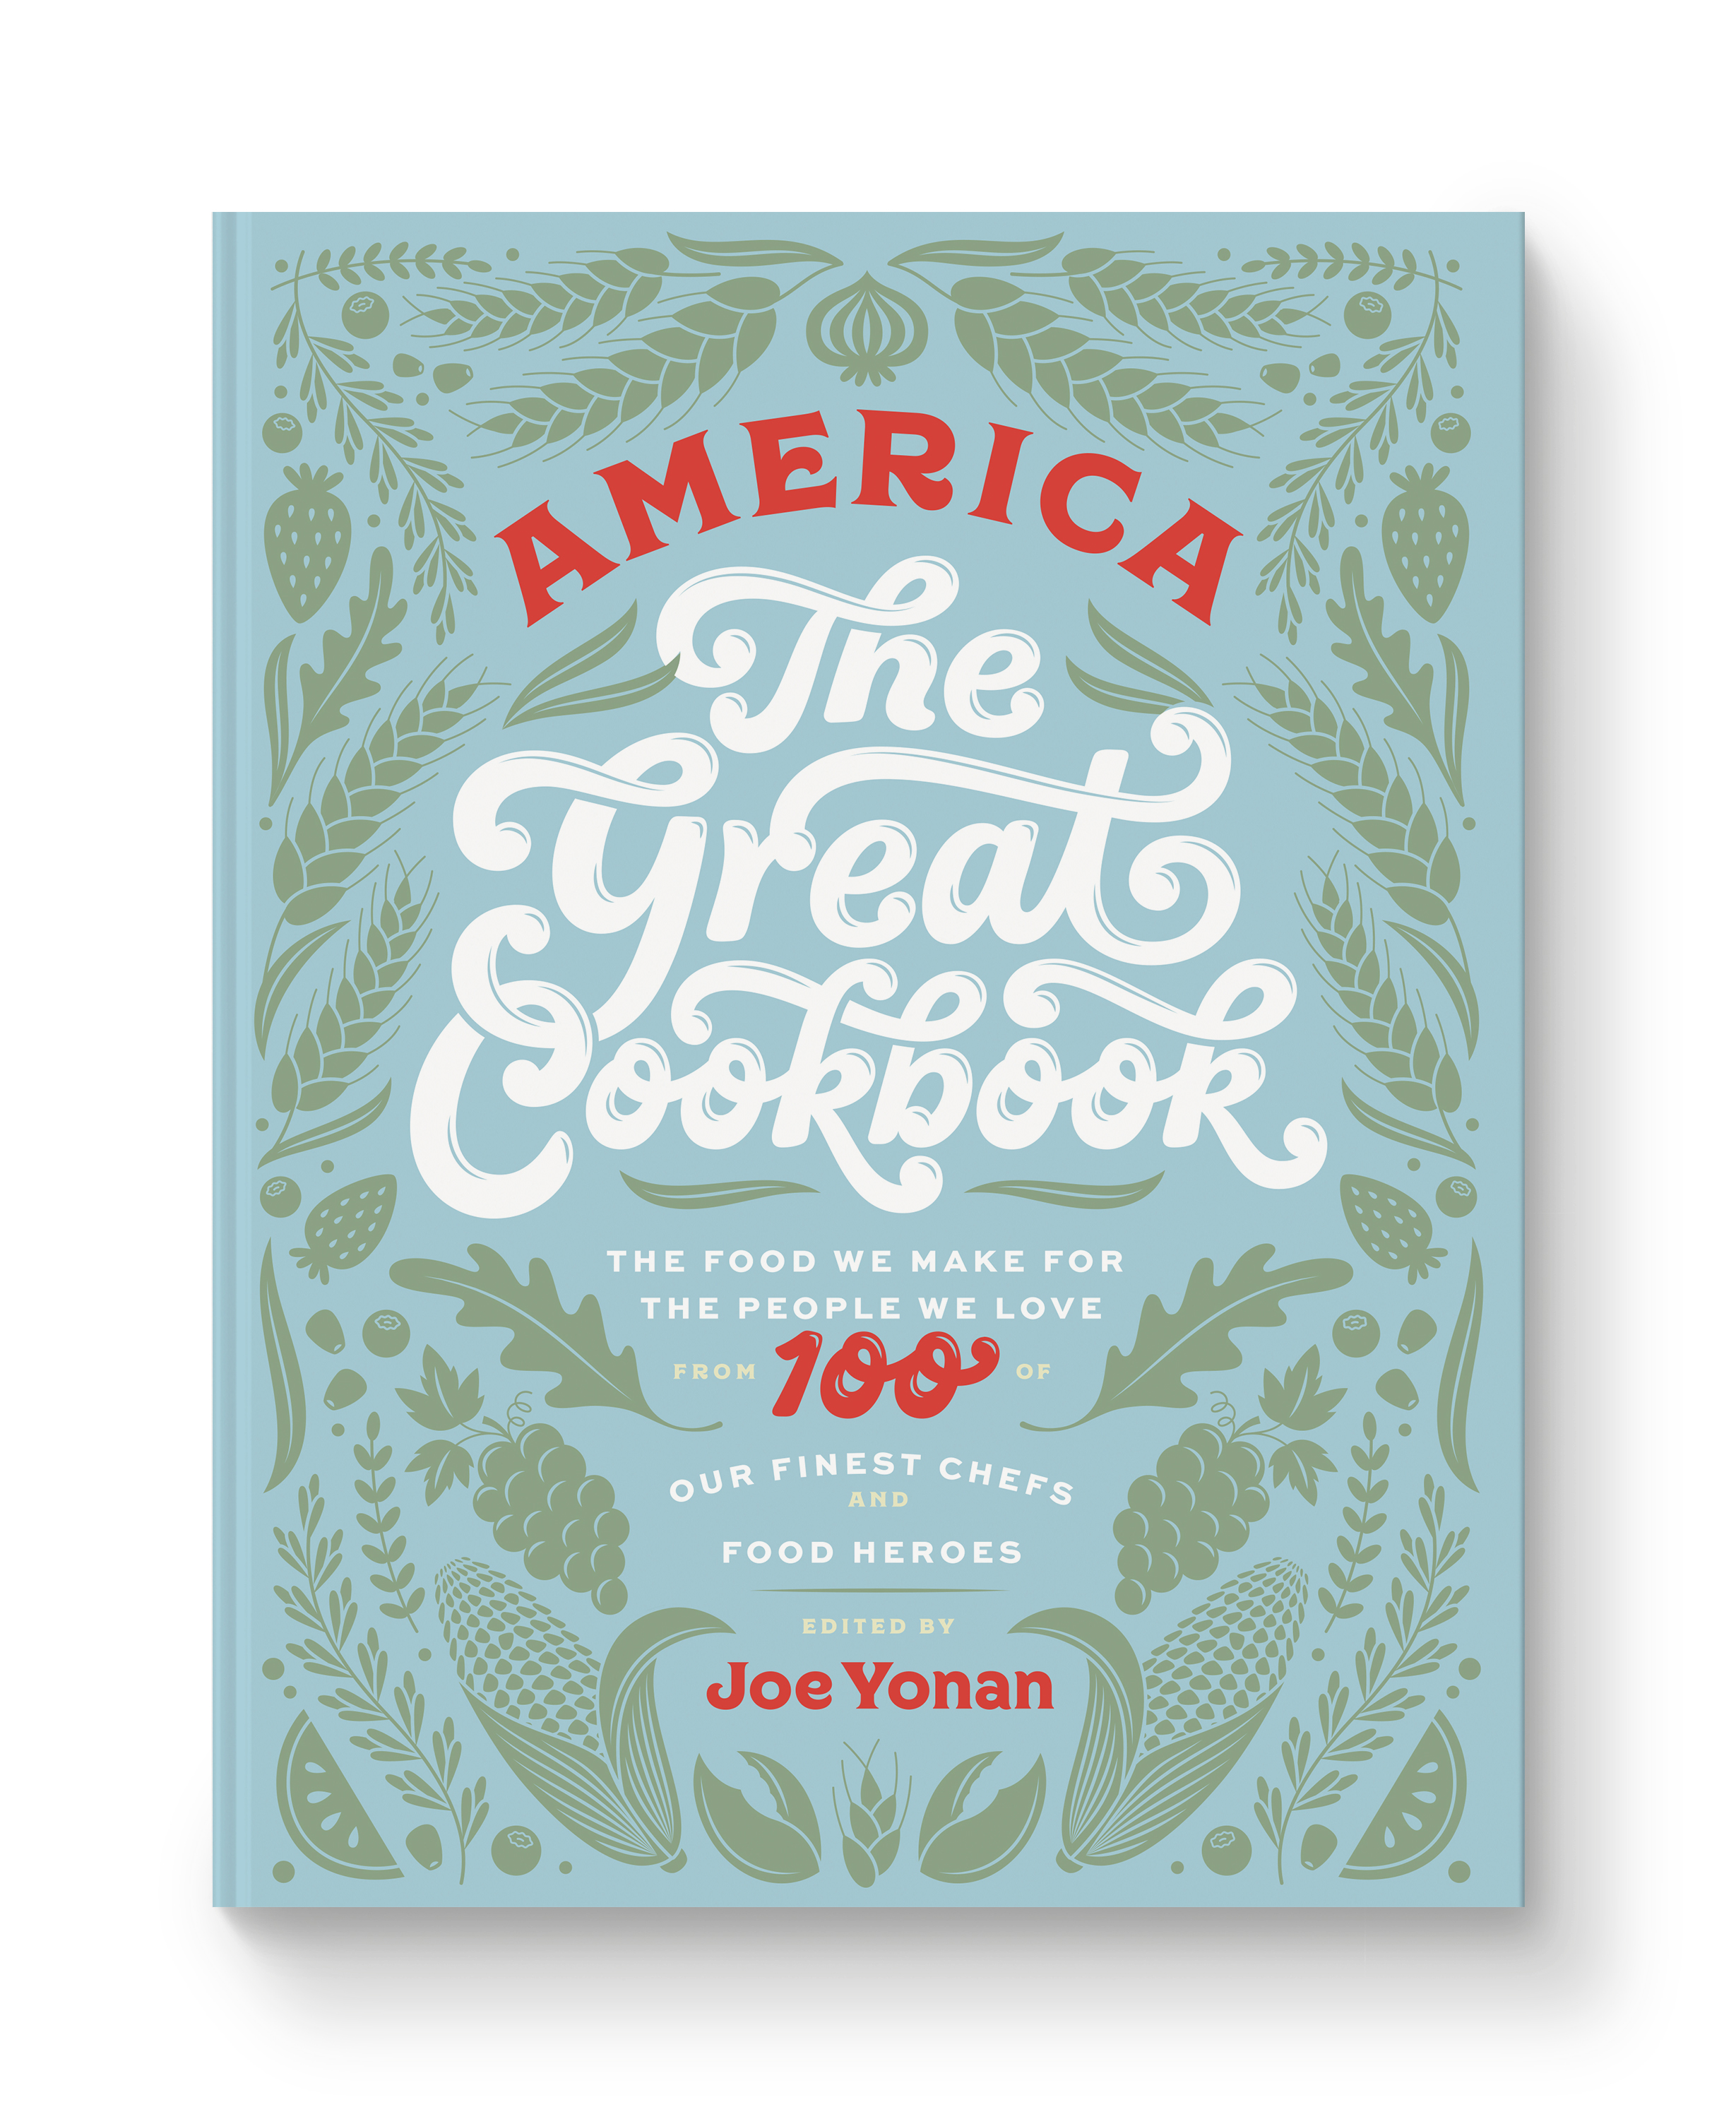 the-great-american-cookbook-jkt.jpg